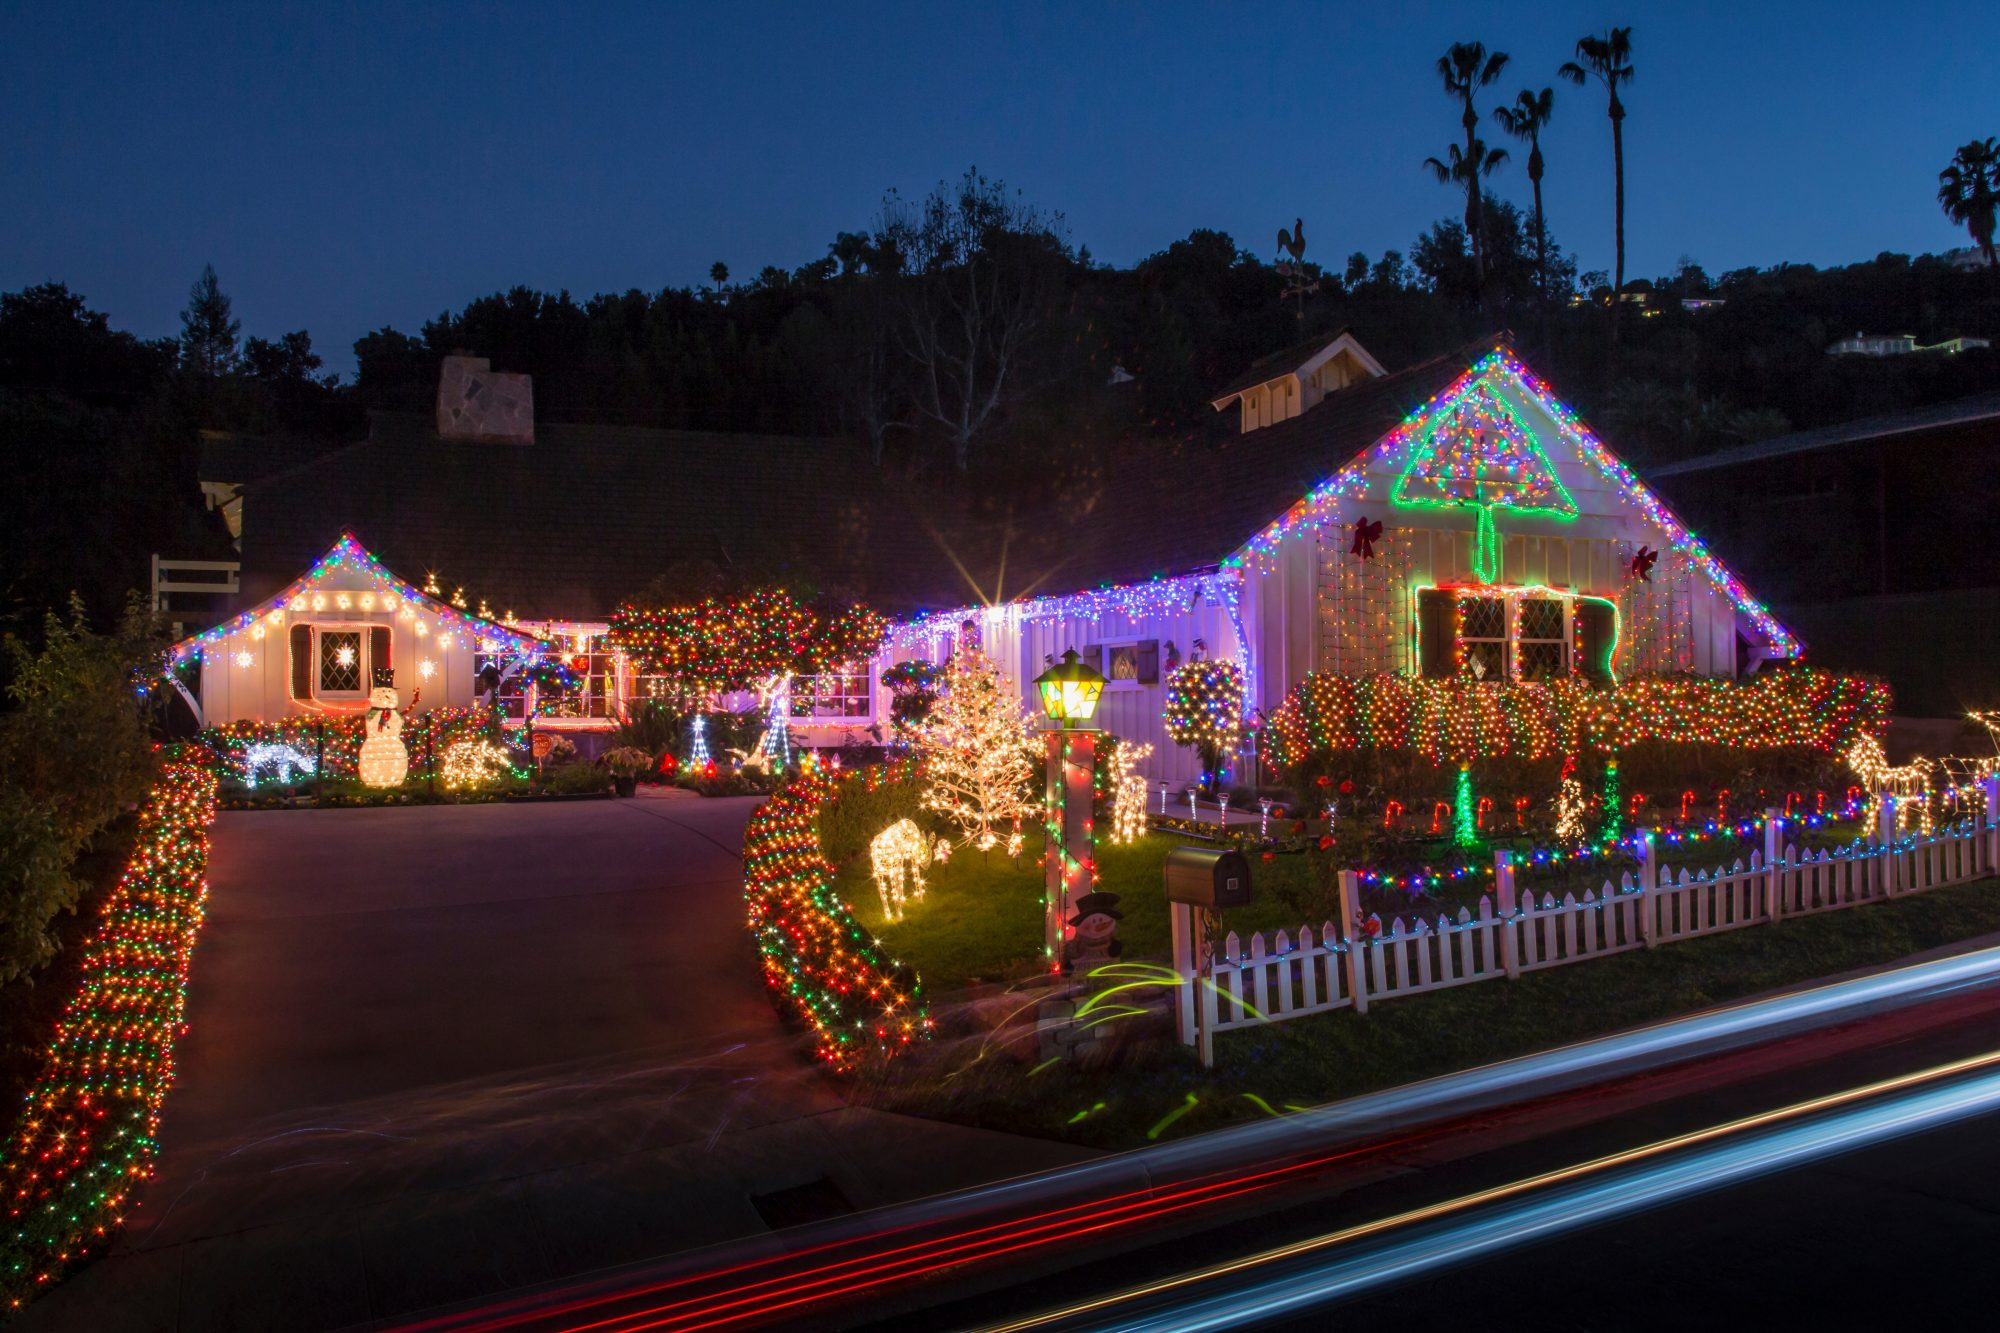 House with Exterior Christmas Lights